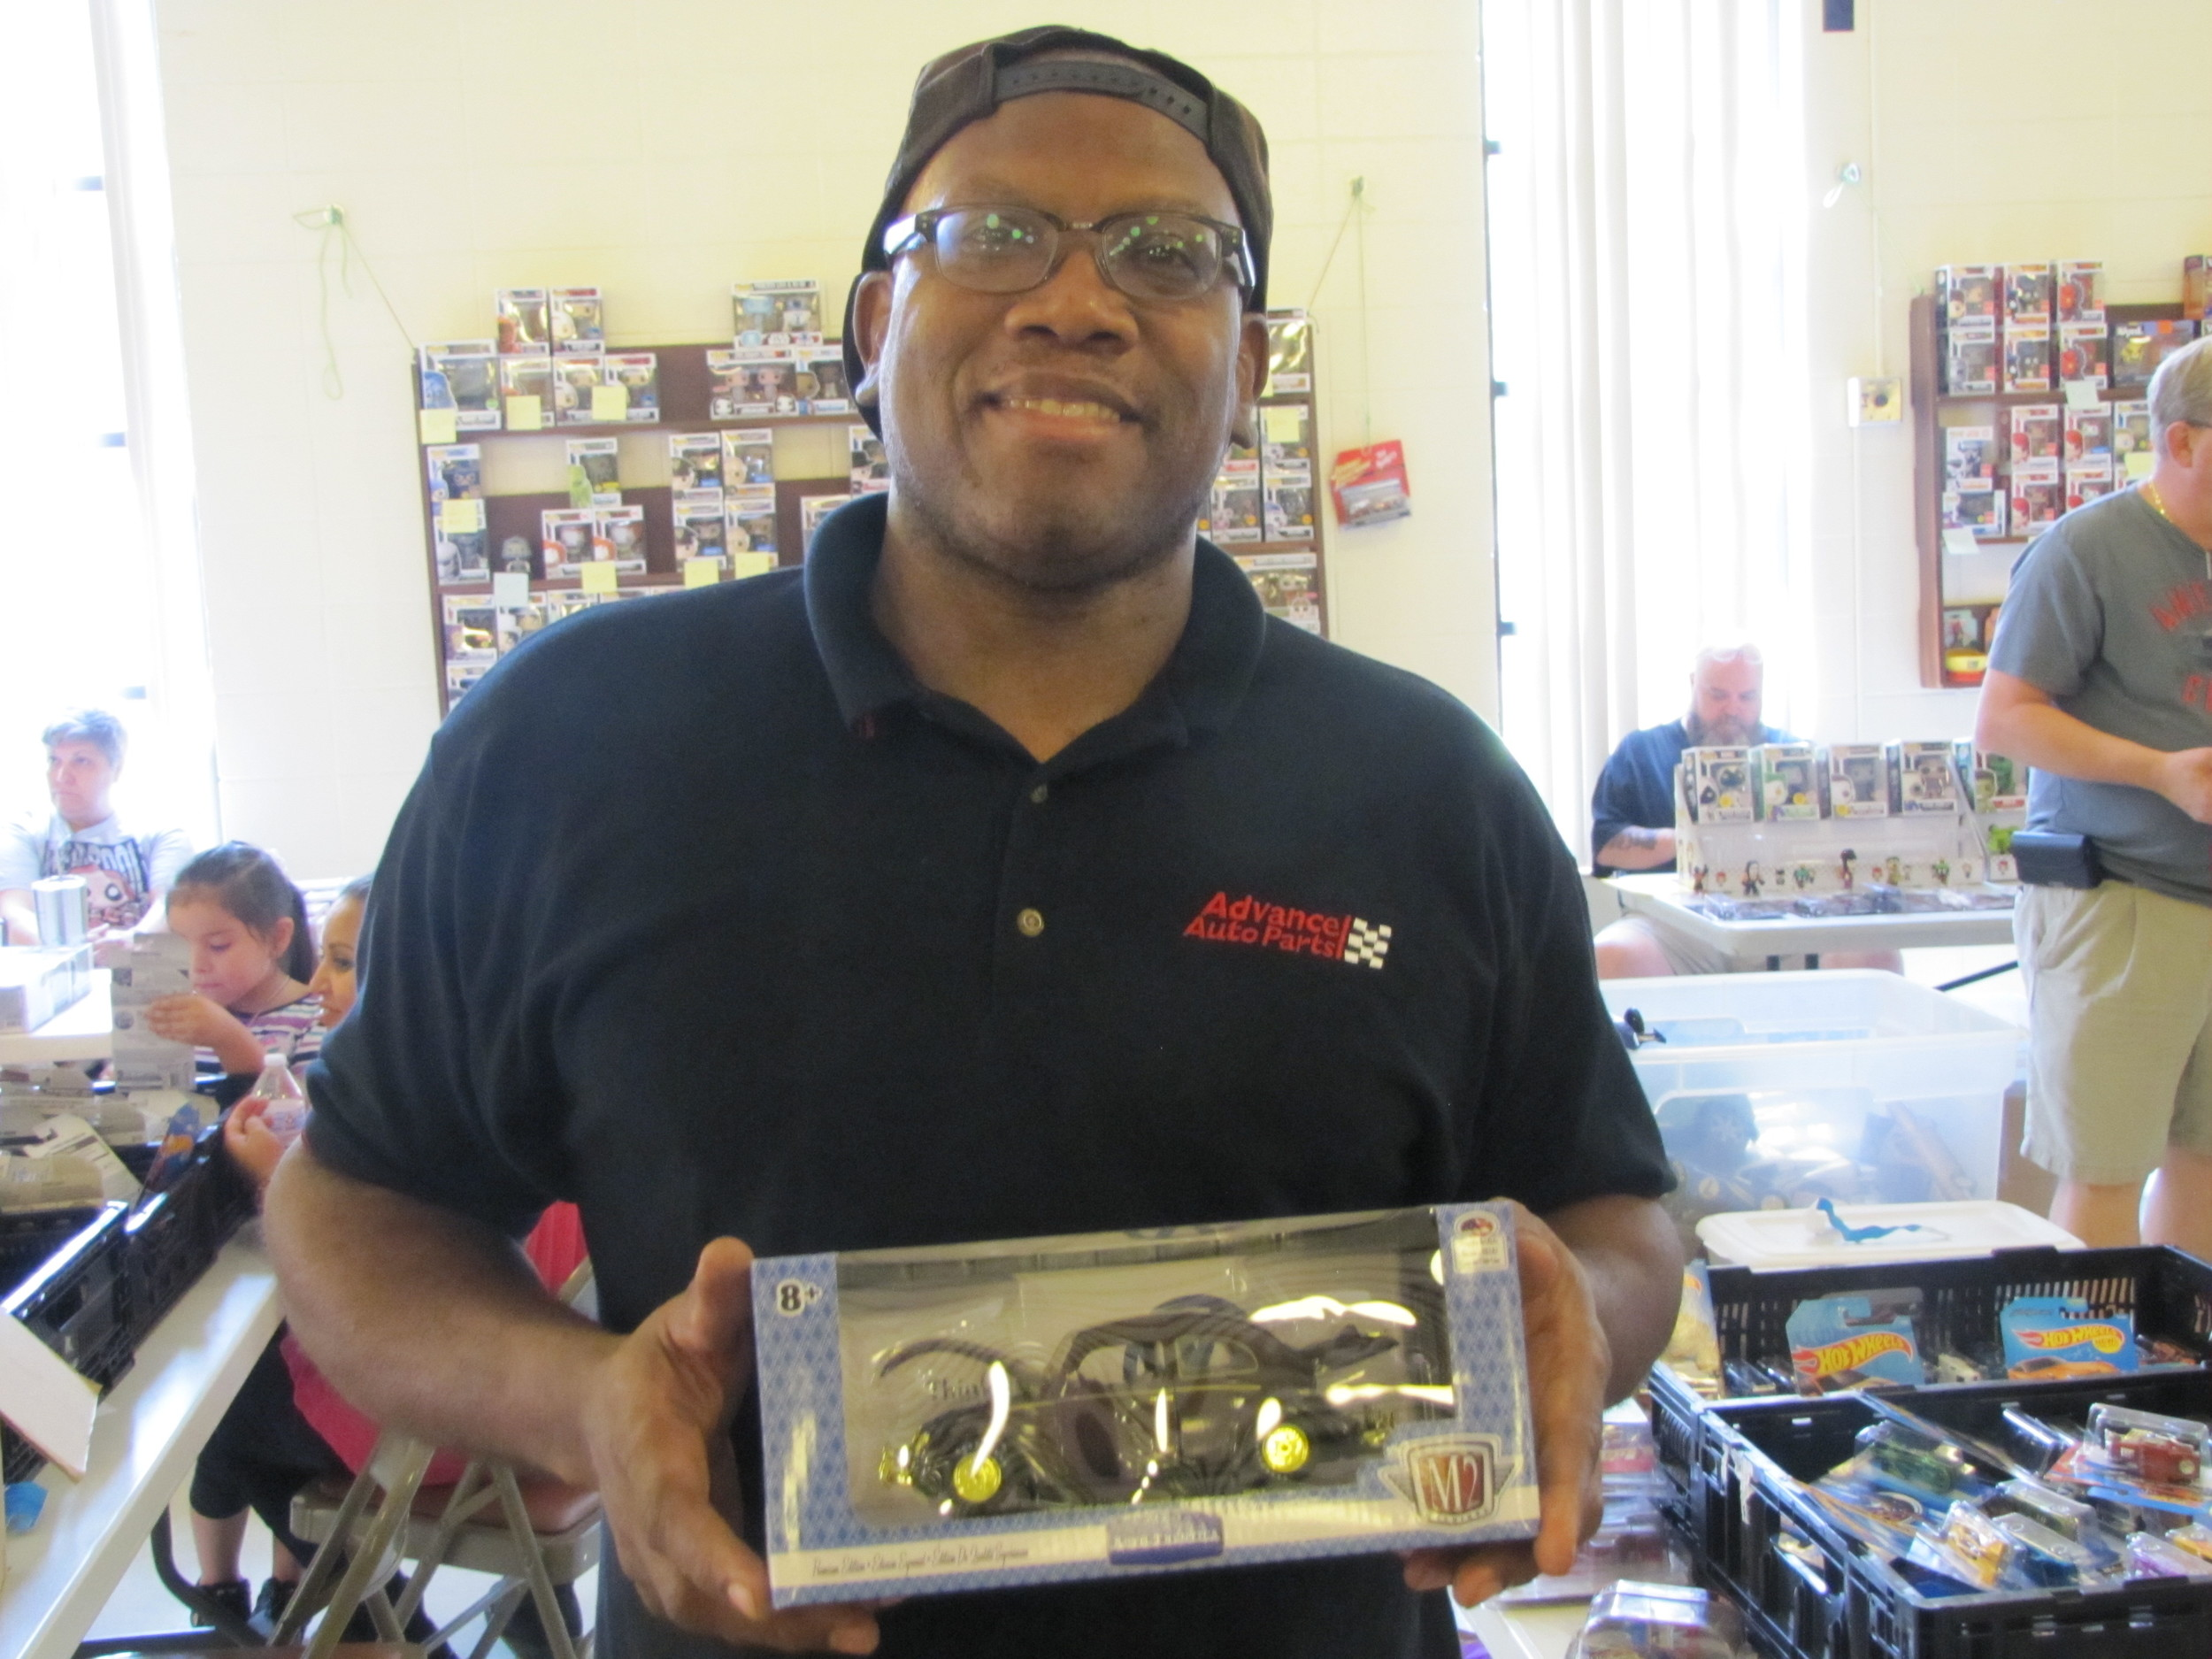 Don Dickenson, 51, of Hapeville, said he's been collecting toy cars for more than 40 years.